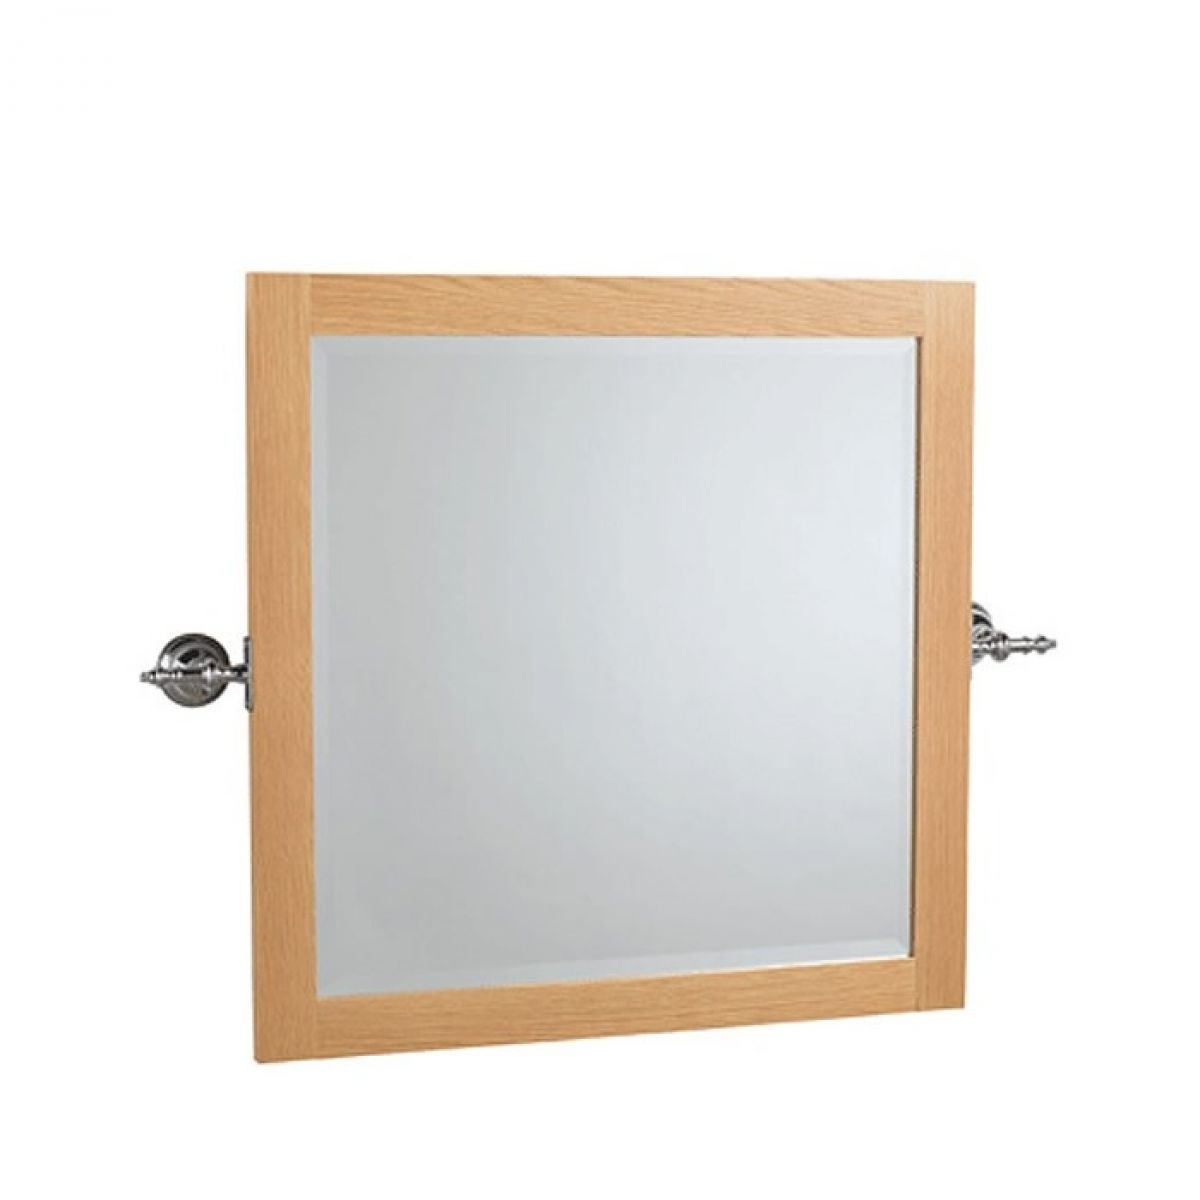 Imperial Avignon Wall Mounted Tilting Mirror Uk Bathrooms